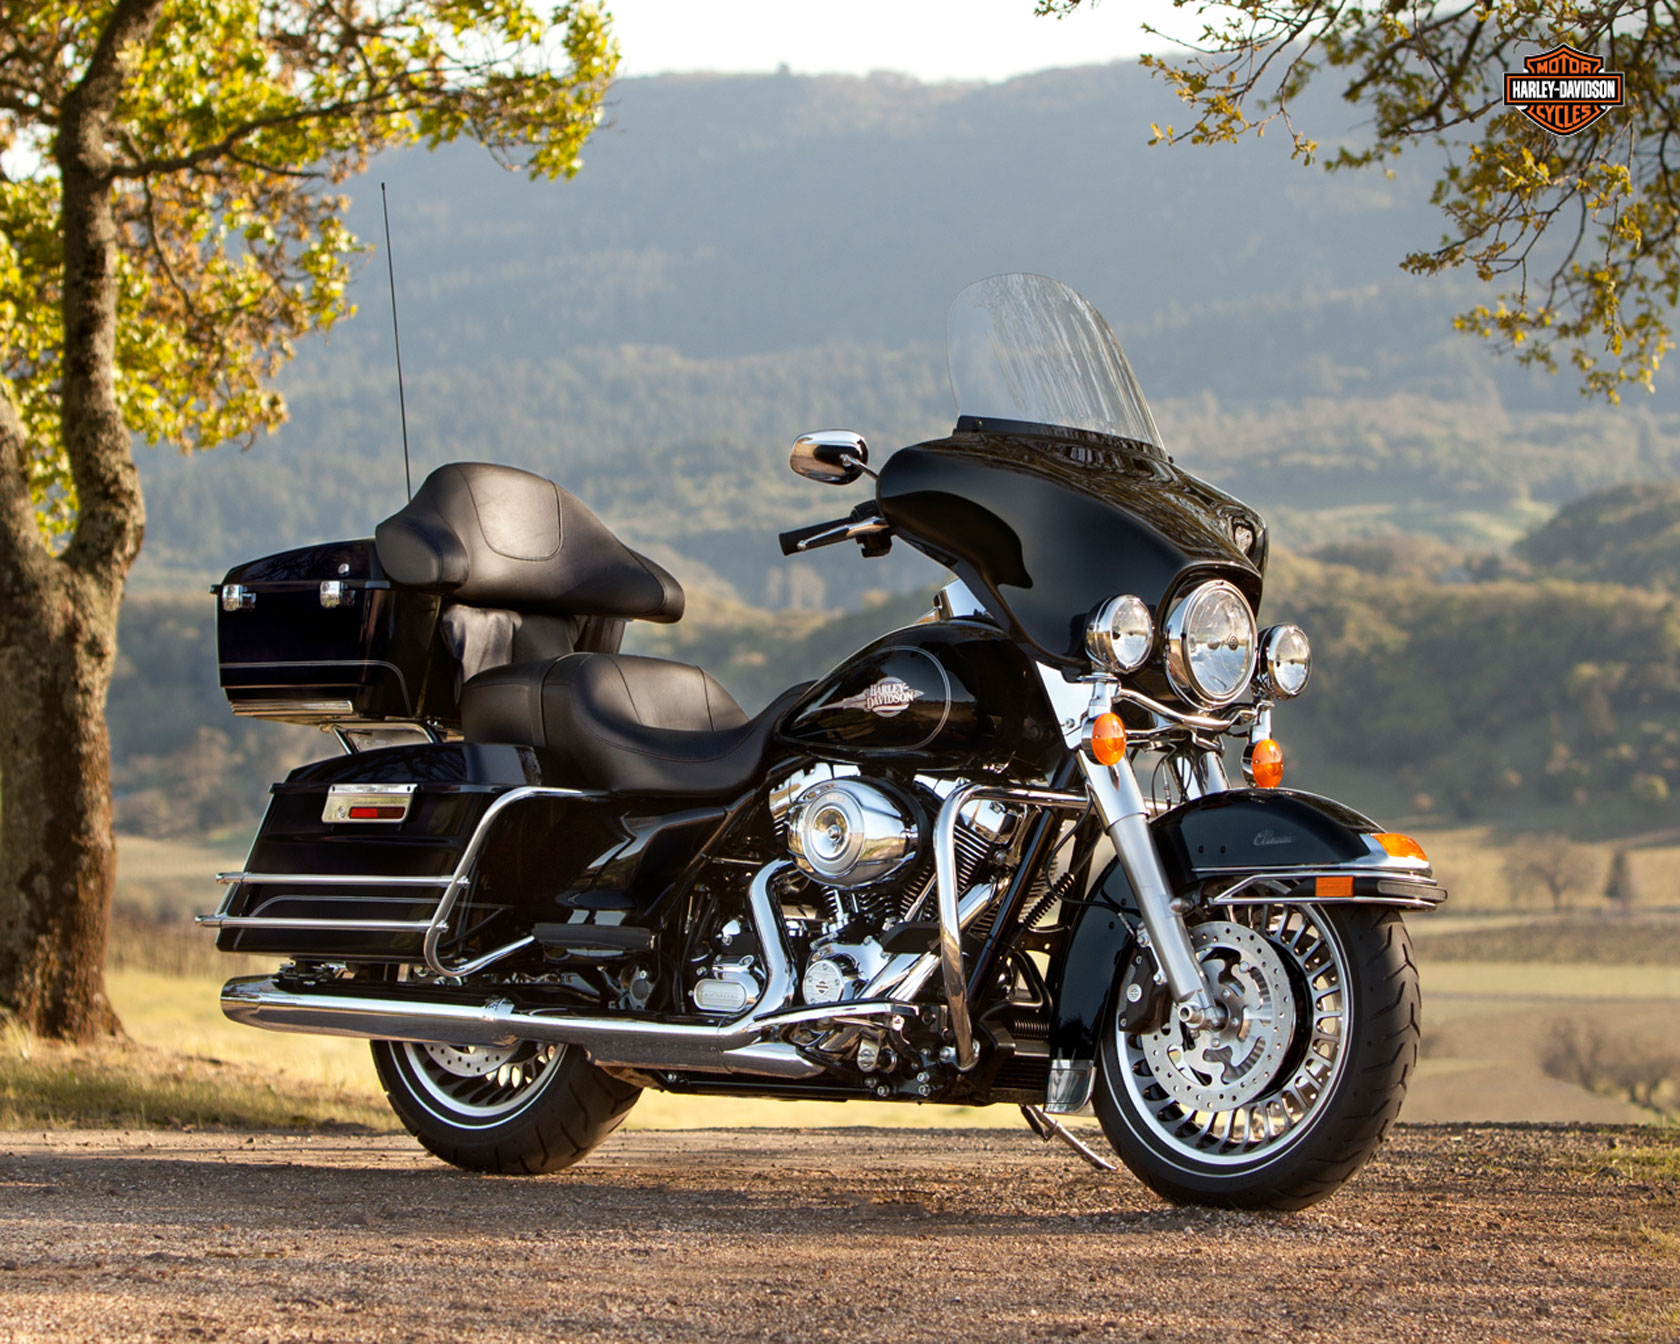 Harley-Davidson FLHTC Electra Glide Classic 2011 wallpapers #133665